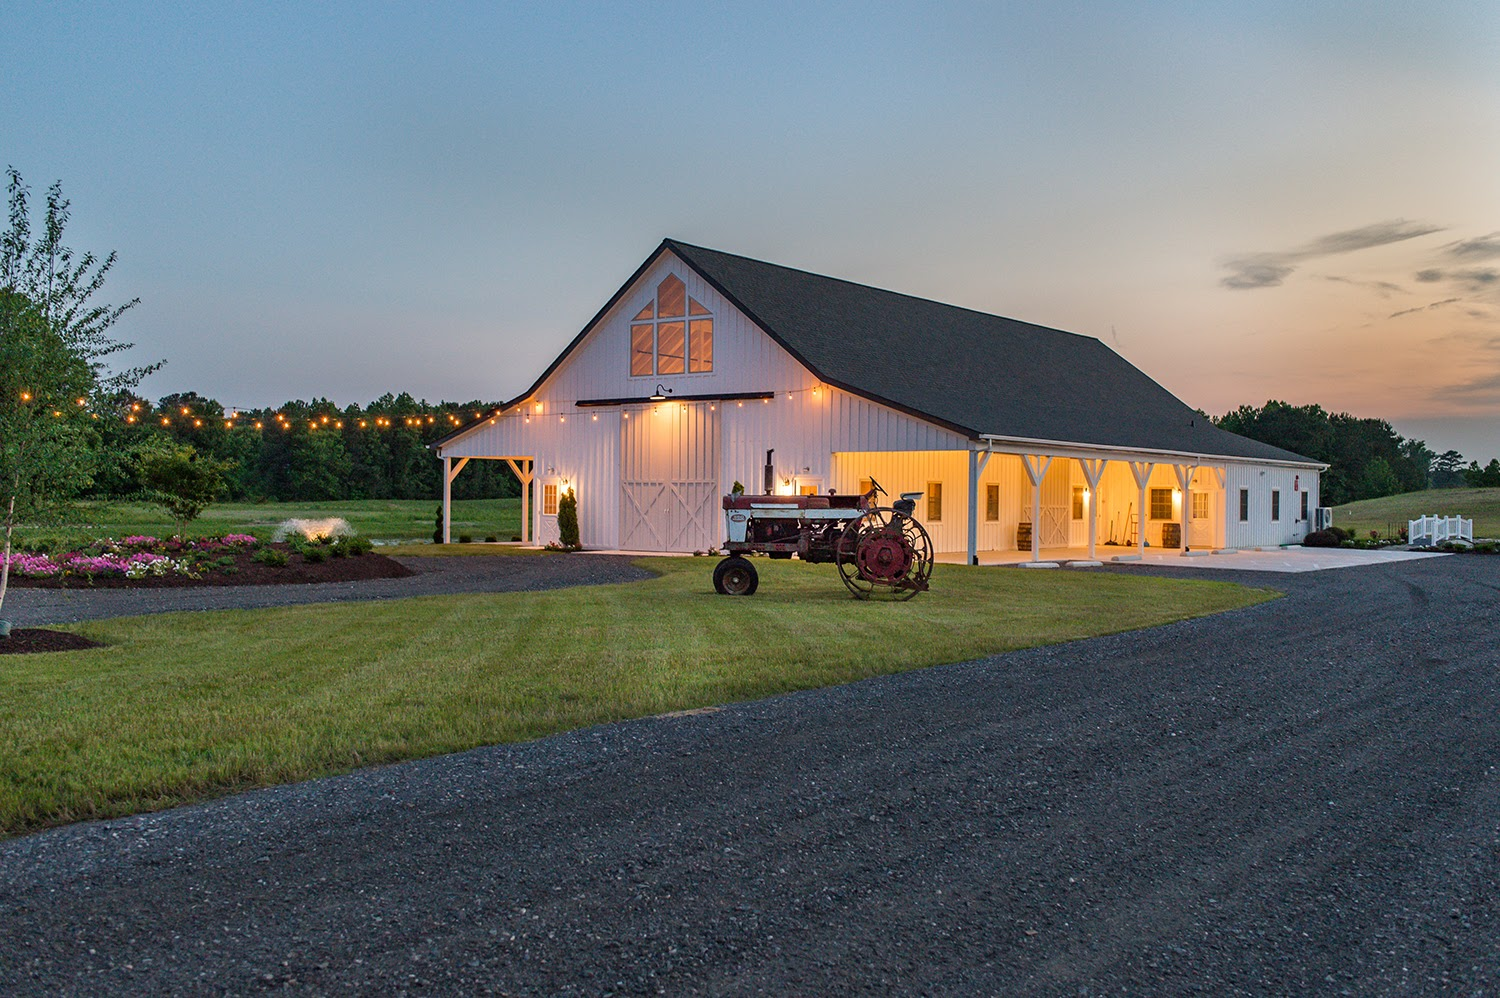 Kylan barn, photo via kylanbarn.com